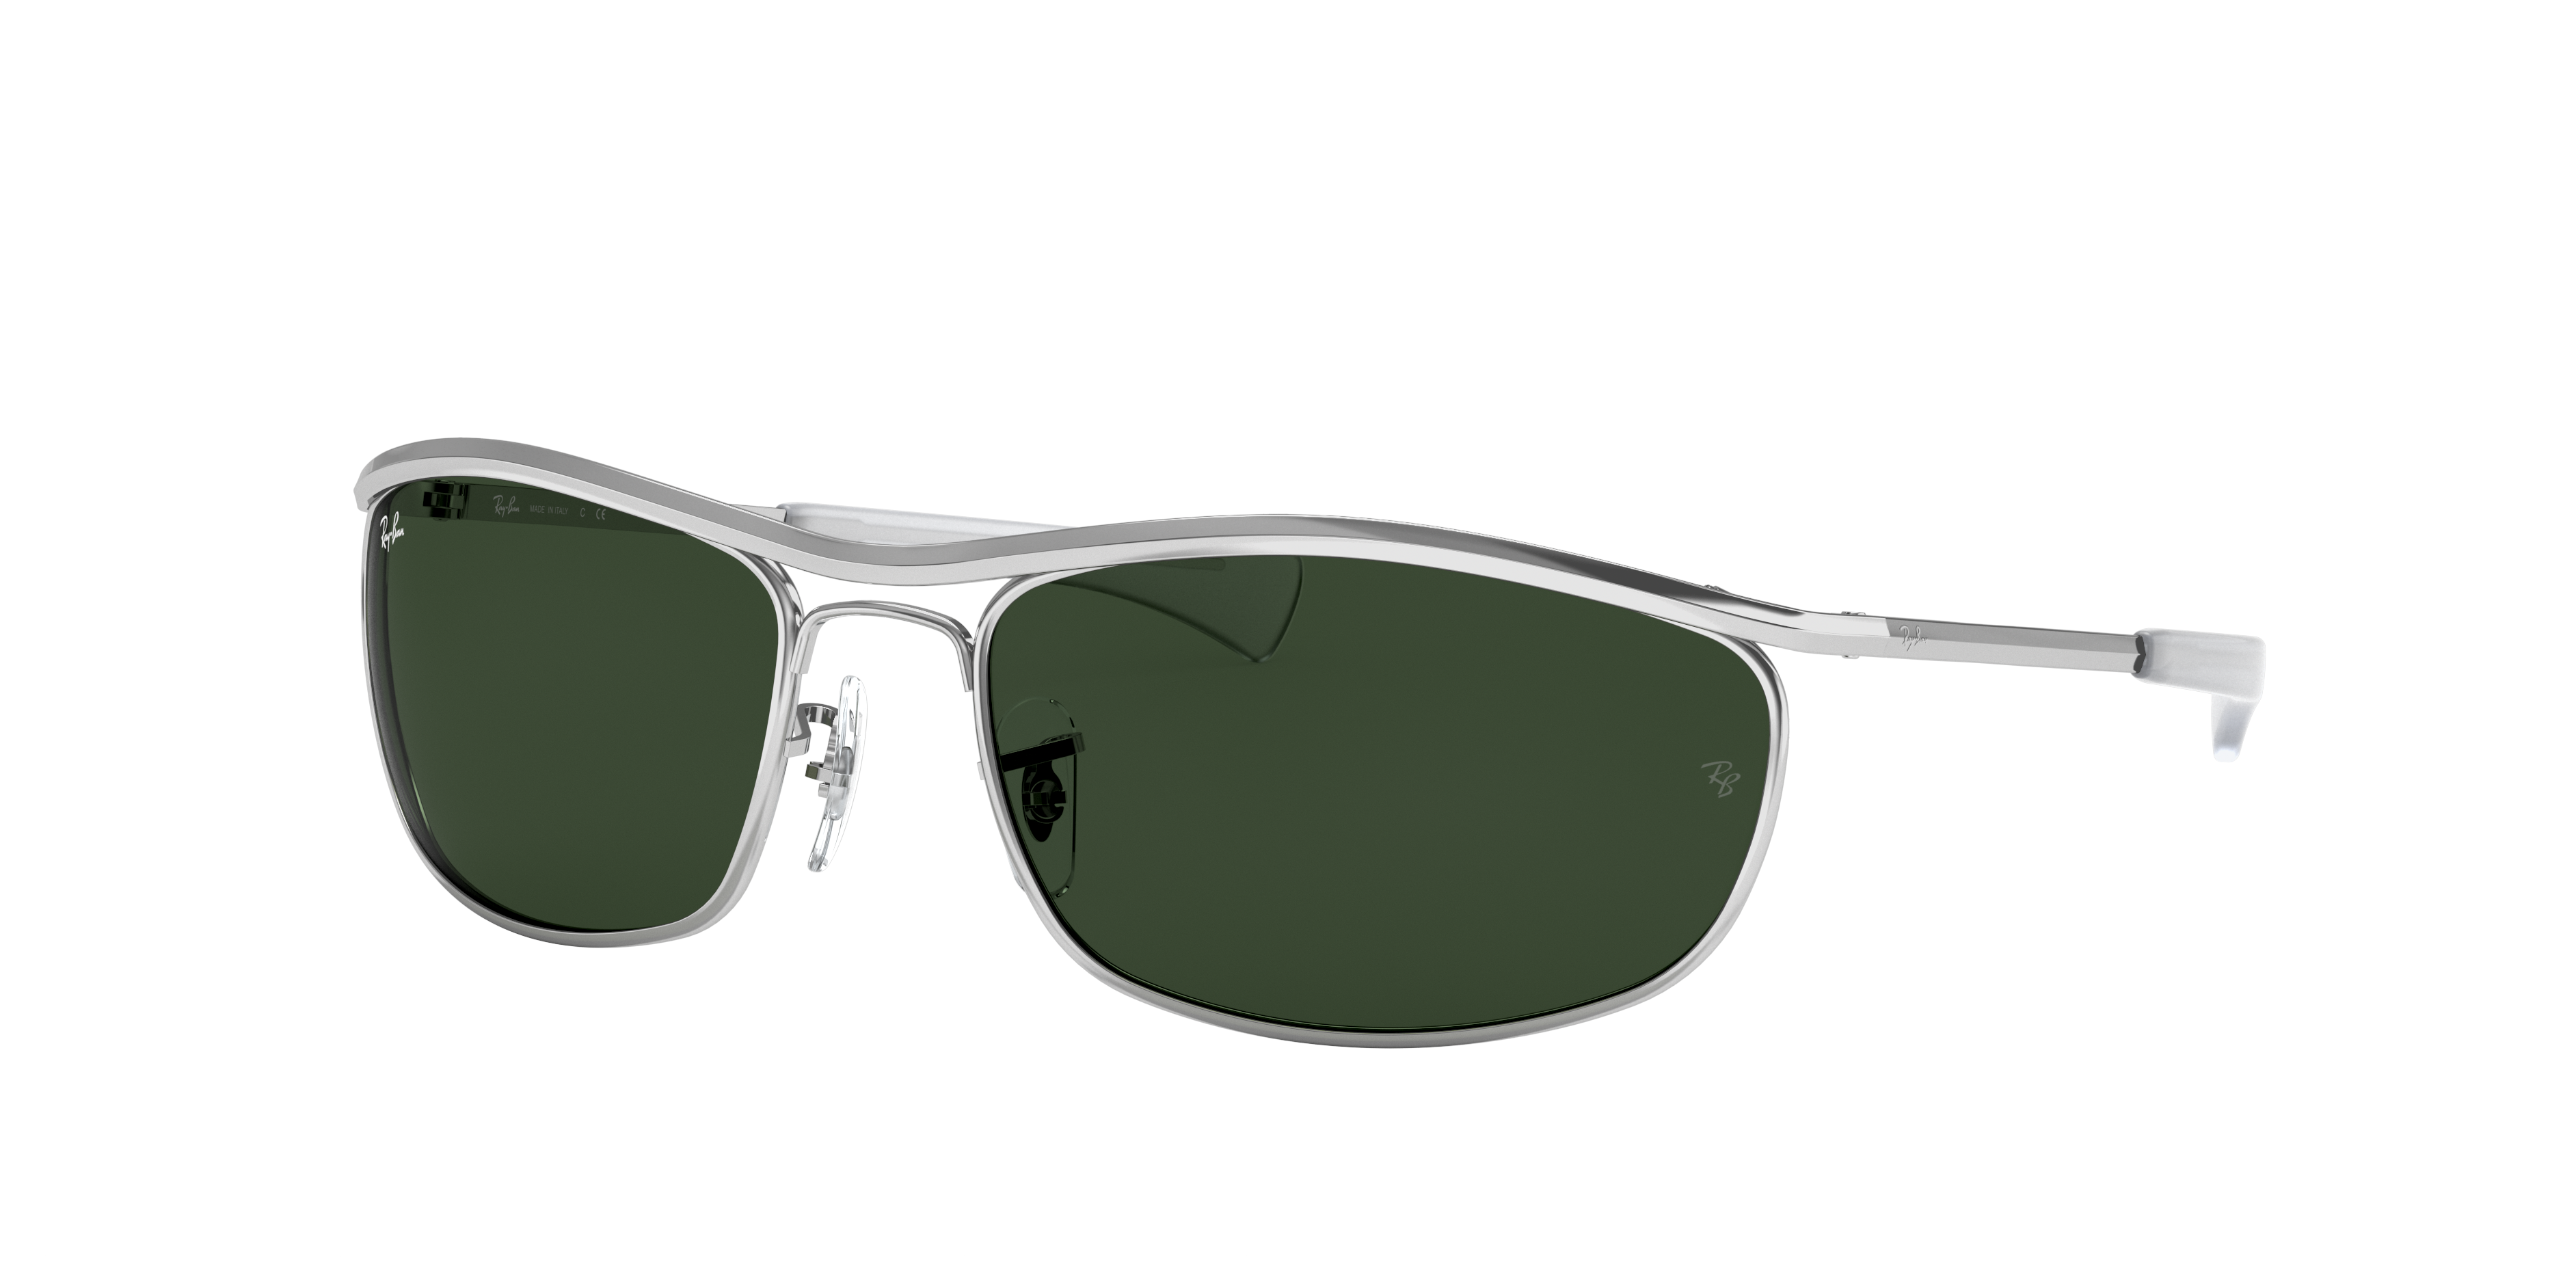 Ray-Ban Olympian I Deluxe Silver, Green Lenses - RB3119M